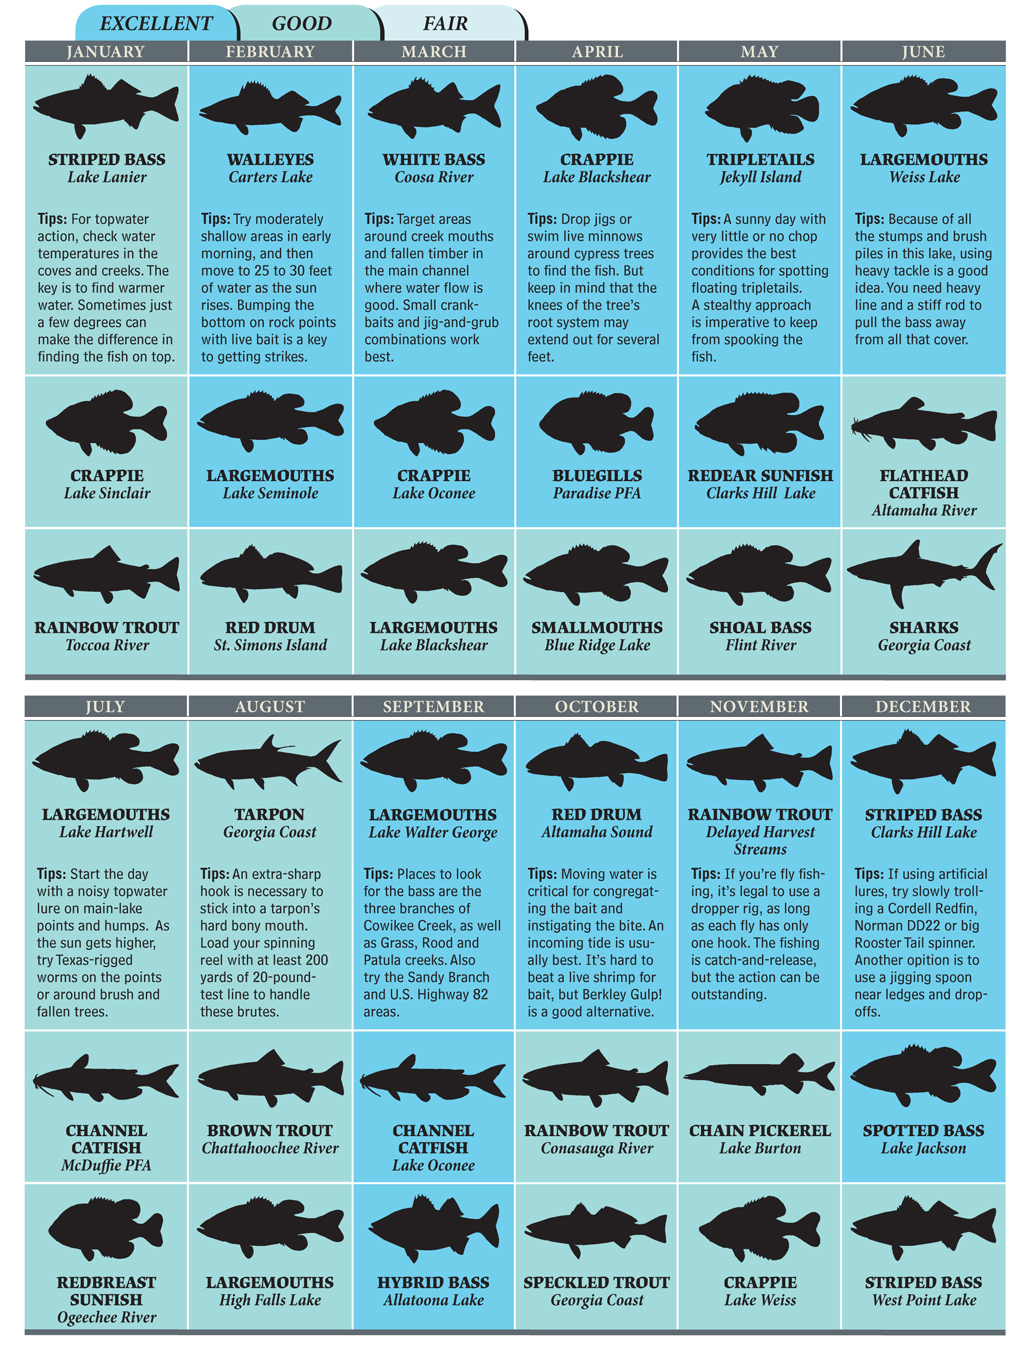 Top spots for georgia fishing in 2012 game fish for South carolina saltwater fish species